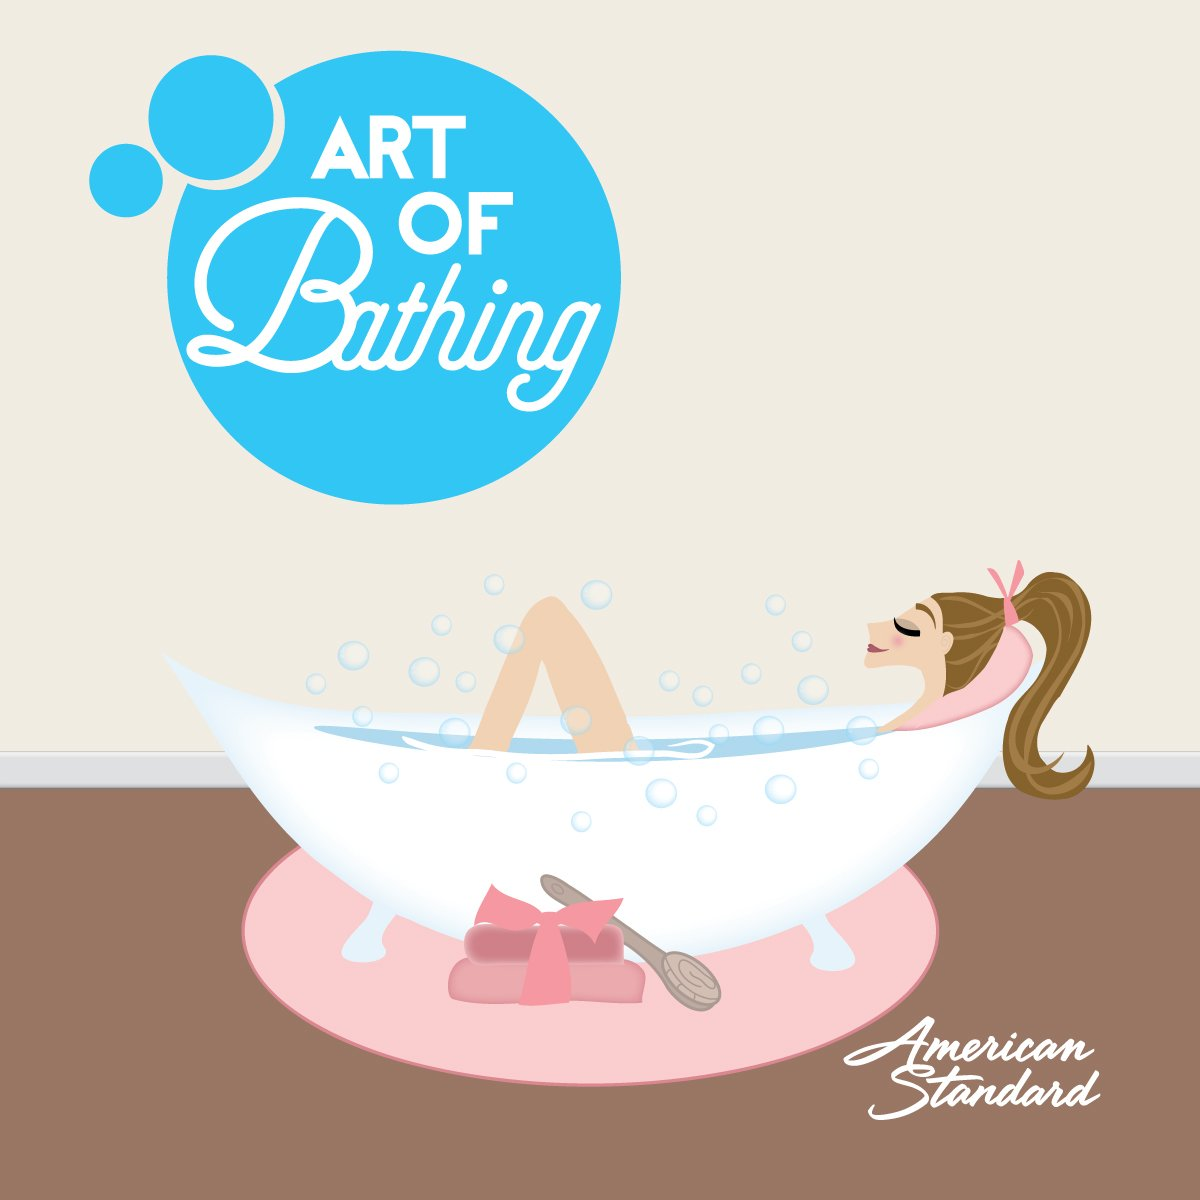 Art of Bathing is in TWO days! Admit it, you sing in the shower. Join us June 16th for a #virtualreality experience! https://t.co/v7TqvVaYLu